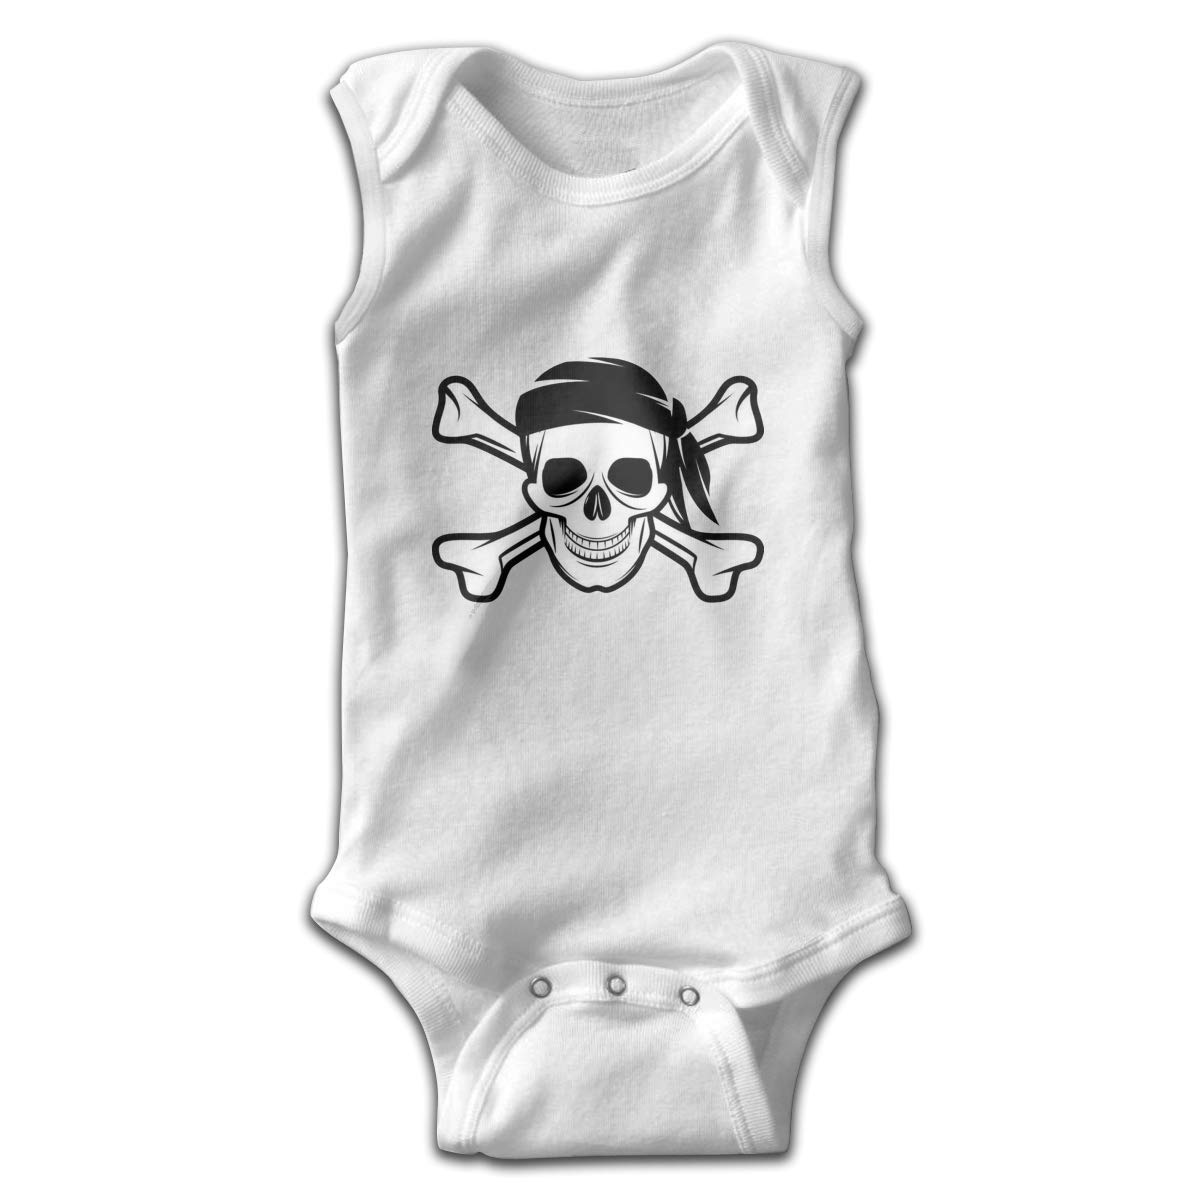 Dfenere Pirate Skull Newborn Baby No Sleeve Bodysuit Romper Infant Summer Clothing Black